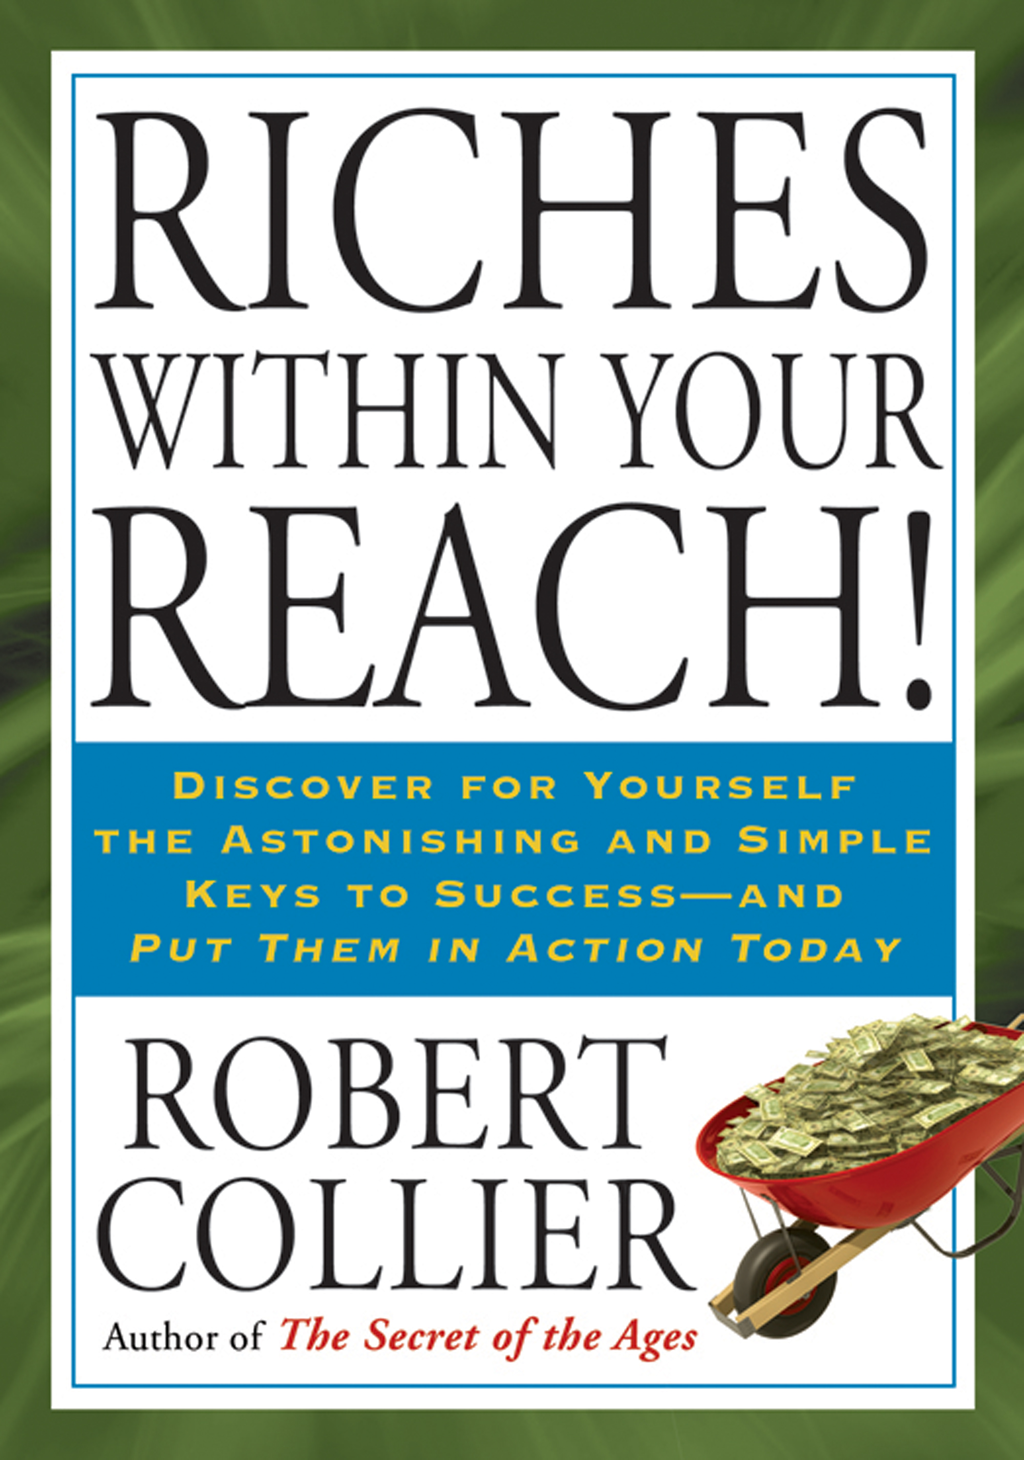 Riches Within Your Reach! By: Robert Collier